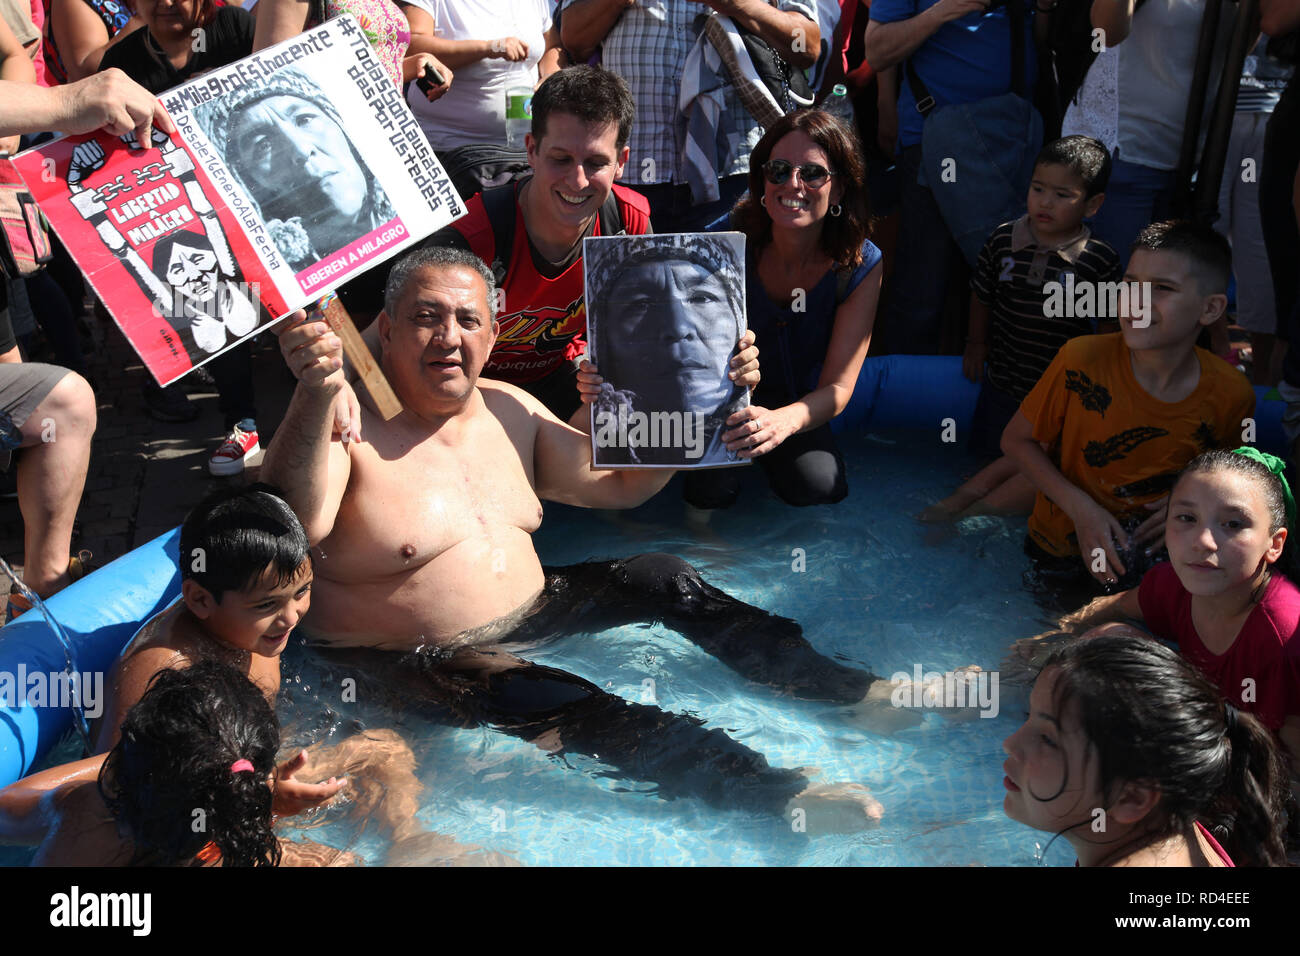 Buenos Aires, Buenos Aires, Argentina. 16th Jan, 2019. Social activists protest in downtown Buenos Aires against the arrest of activist Milagro Sala. They make a protest bathing in canvas pools next to the Obelisk. Credit: Claudio Santisteban/ZUMA Wire/Alamy Live News - Stock Image